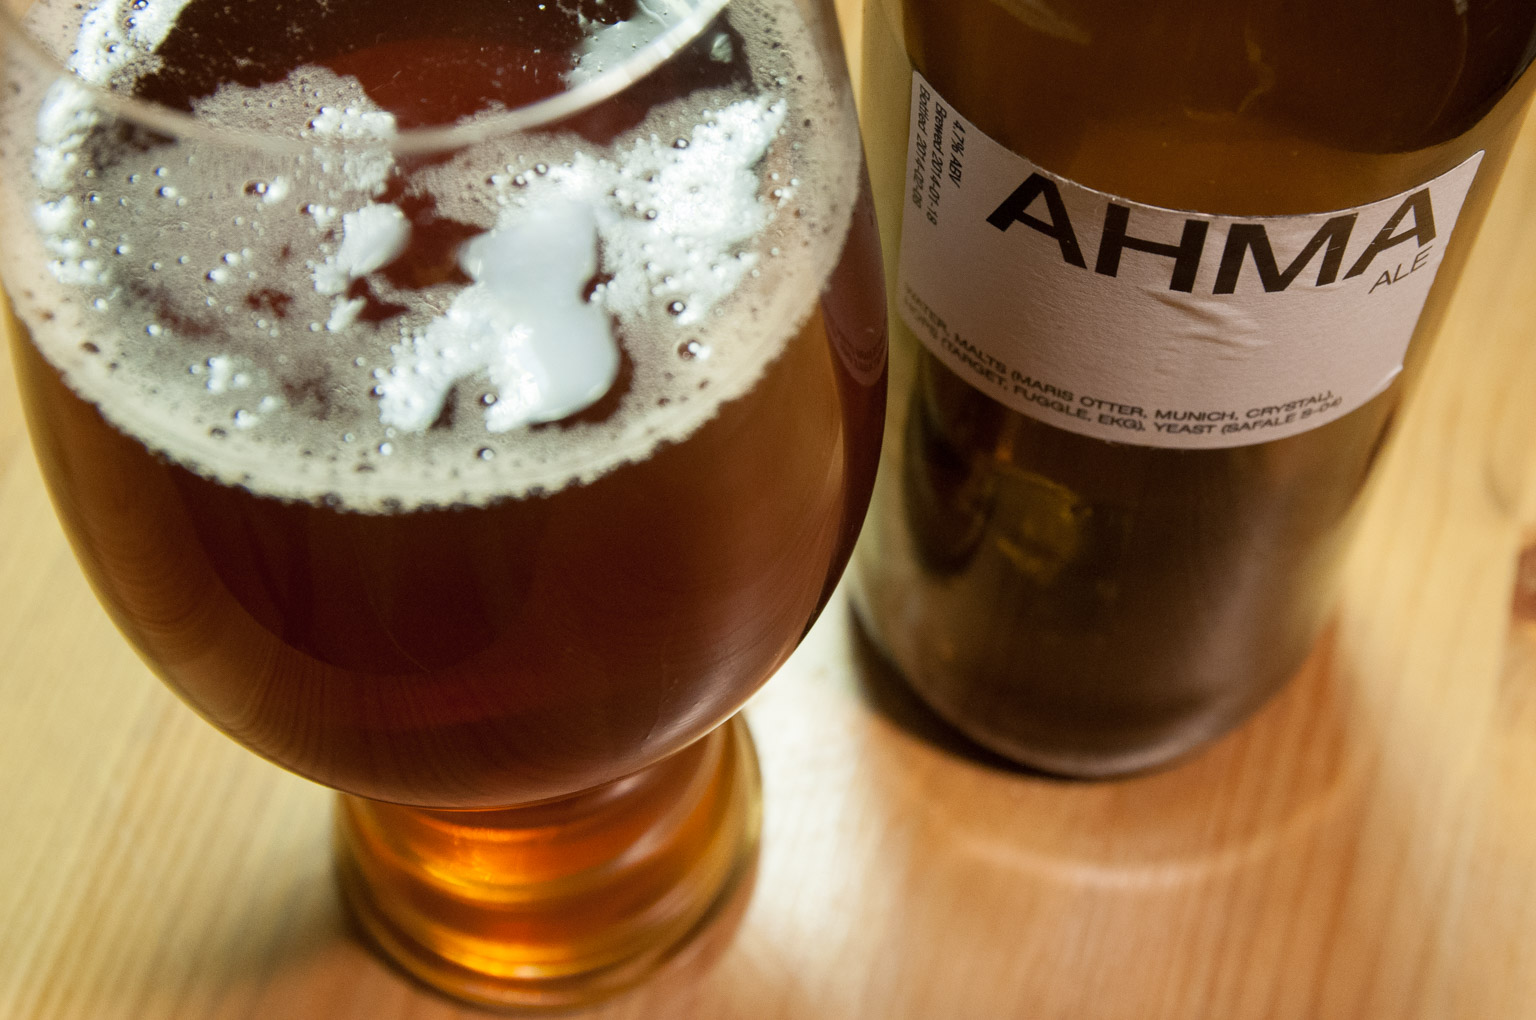 Ahma Ale bottle and glass